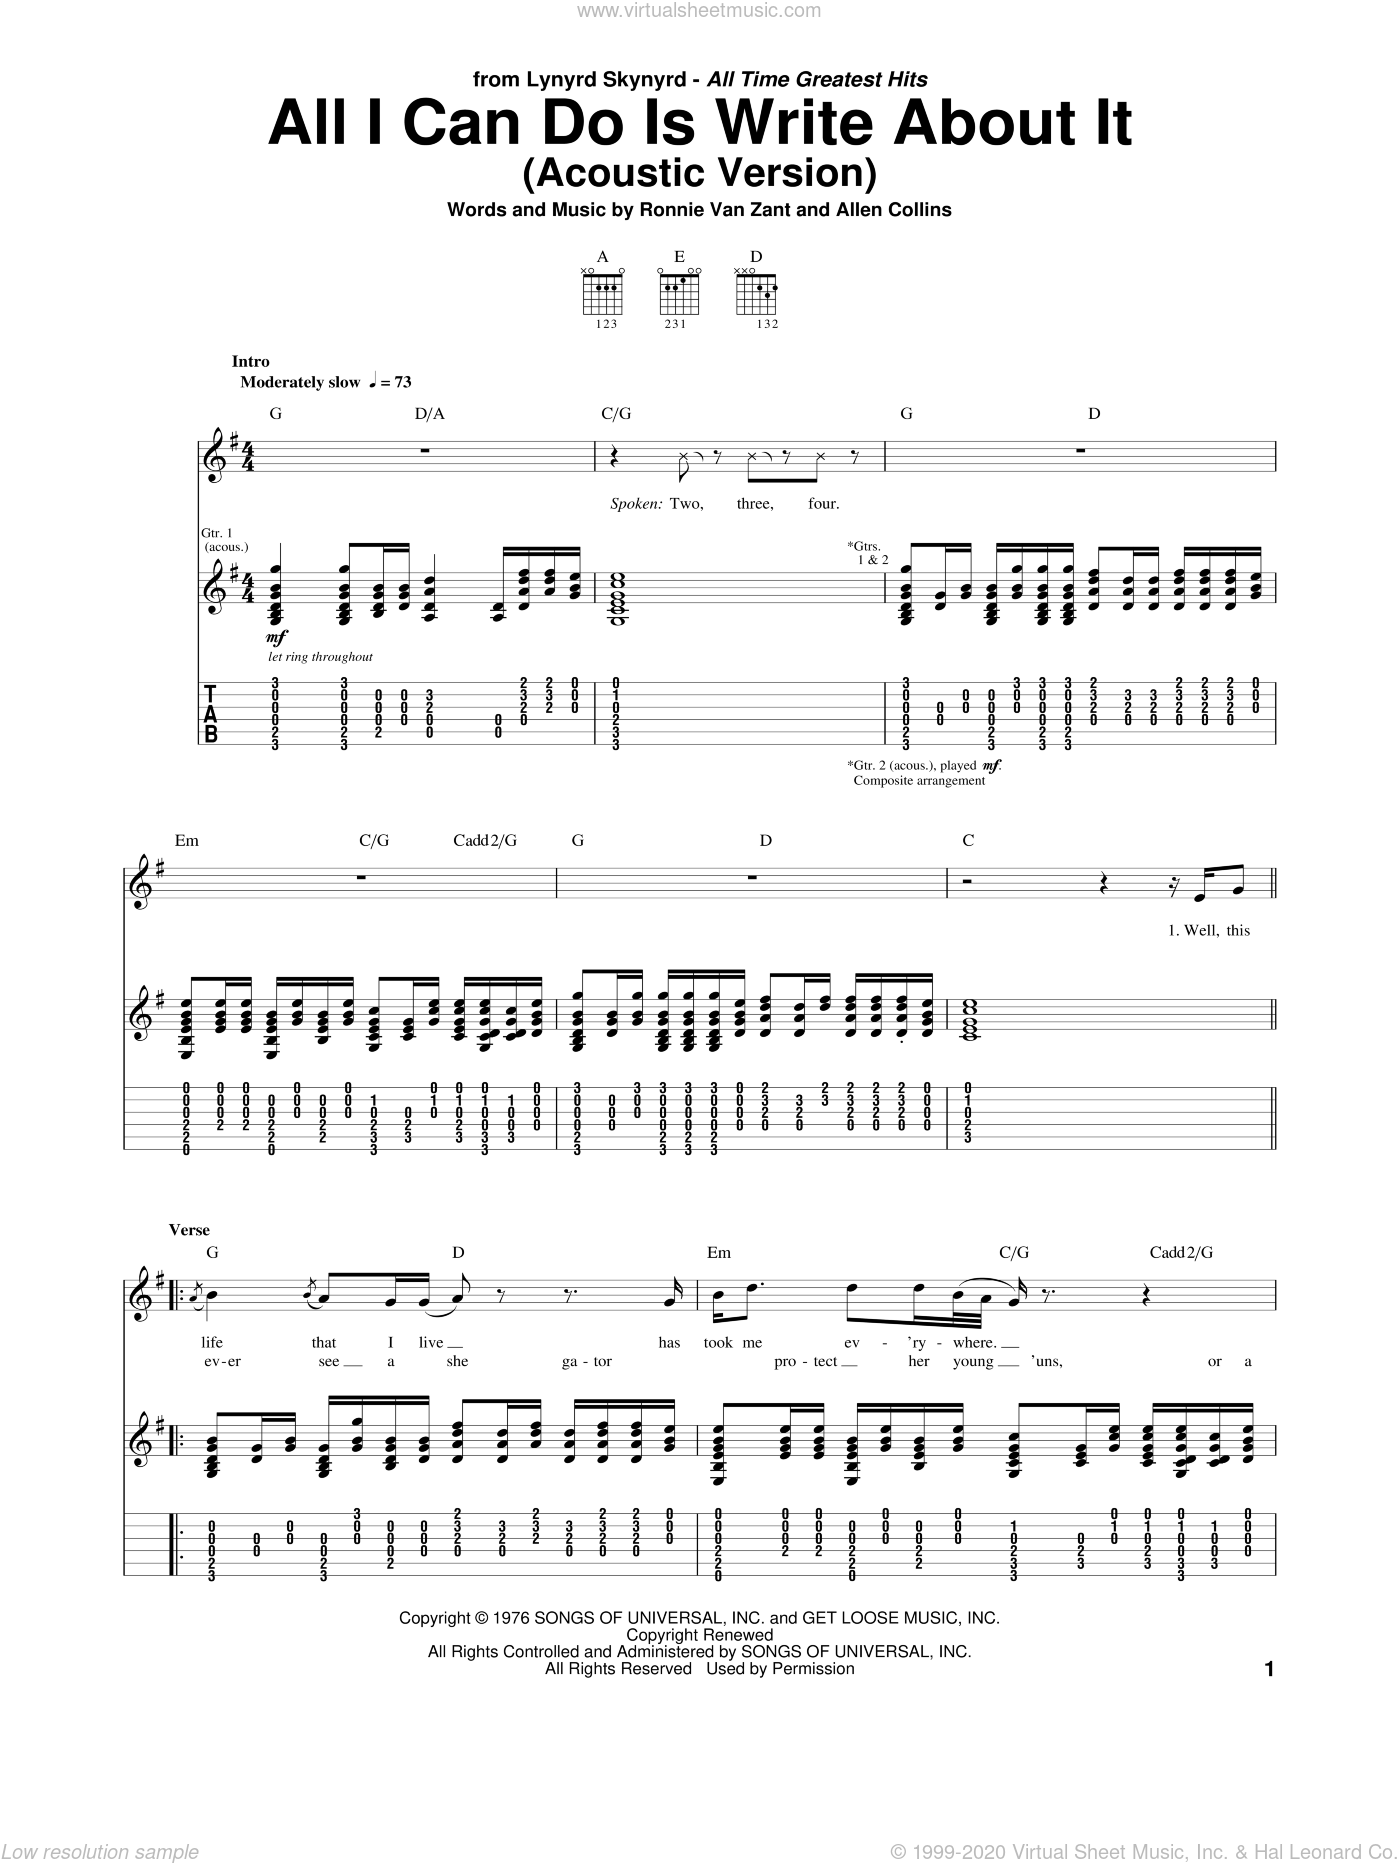 All I Can Do Is Write About It sheet music for guitar (tablature) by Ronnie Van Zant, Lynyrd Skynyrd and Allen Collins. Score Image Preview.